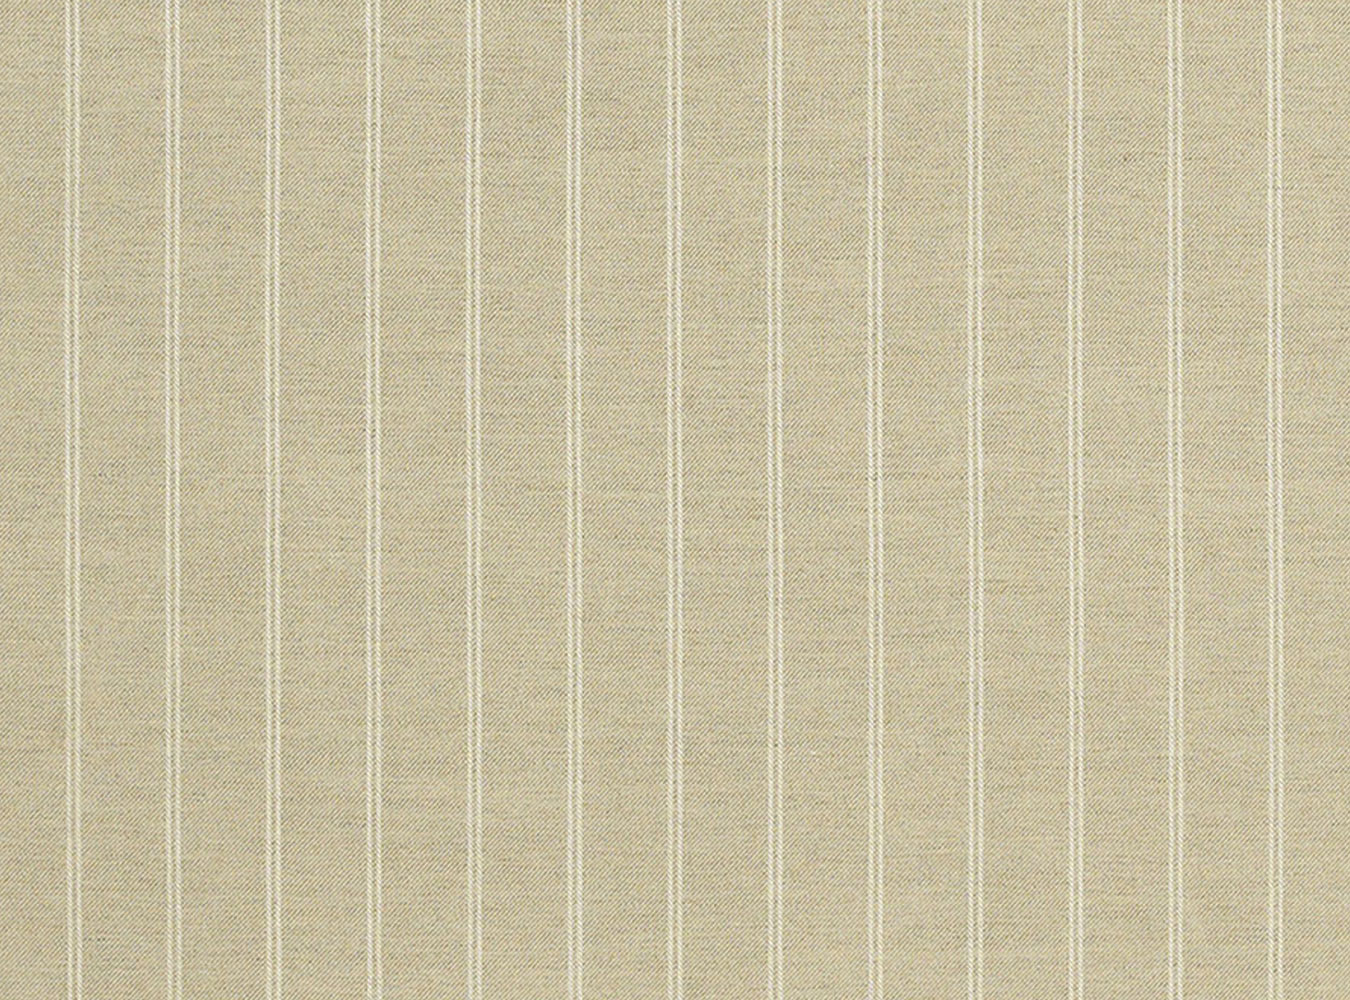 Laura Ashley Linen Stripe - Swatch Sample